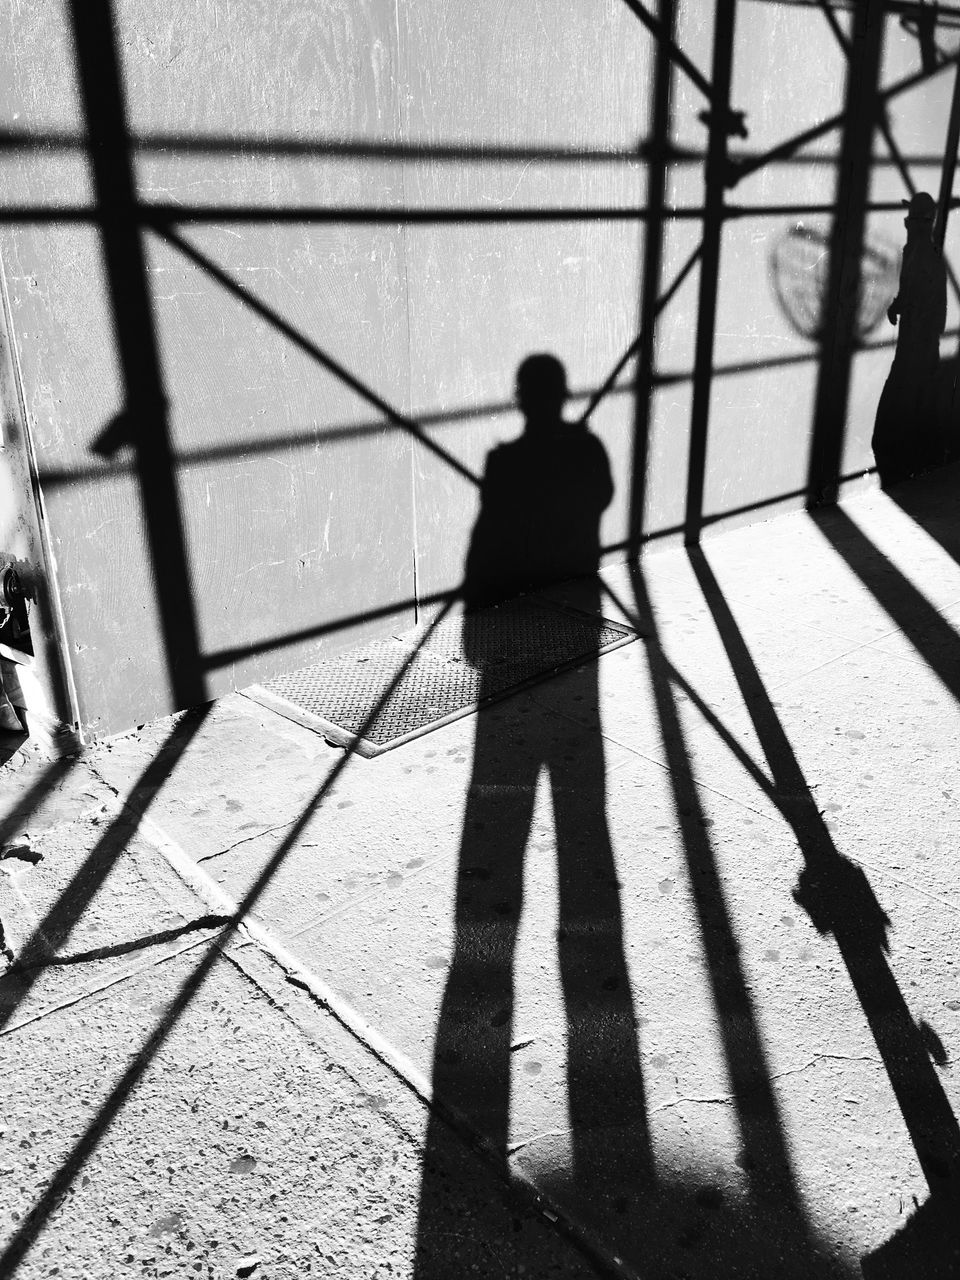 shadow, sunlight, real people, focus on shadow, one person, day, standing, high angle view, lifestyles, men, outdoors, people